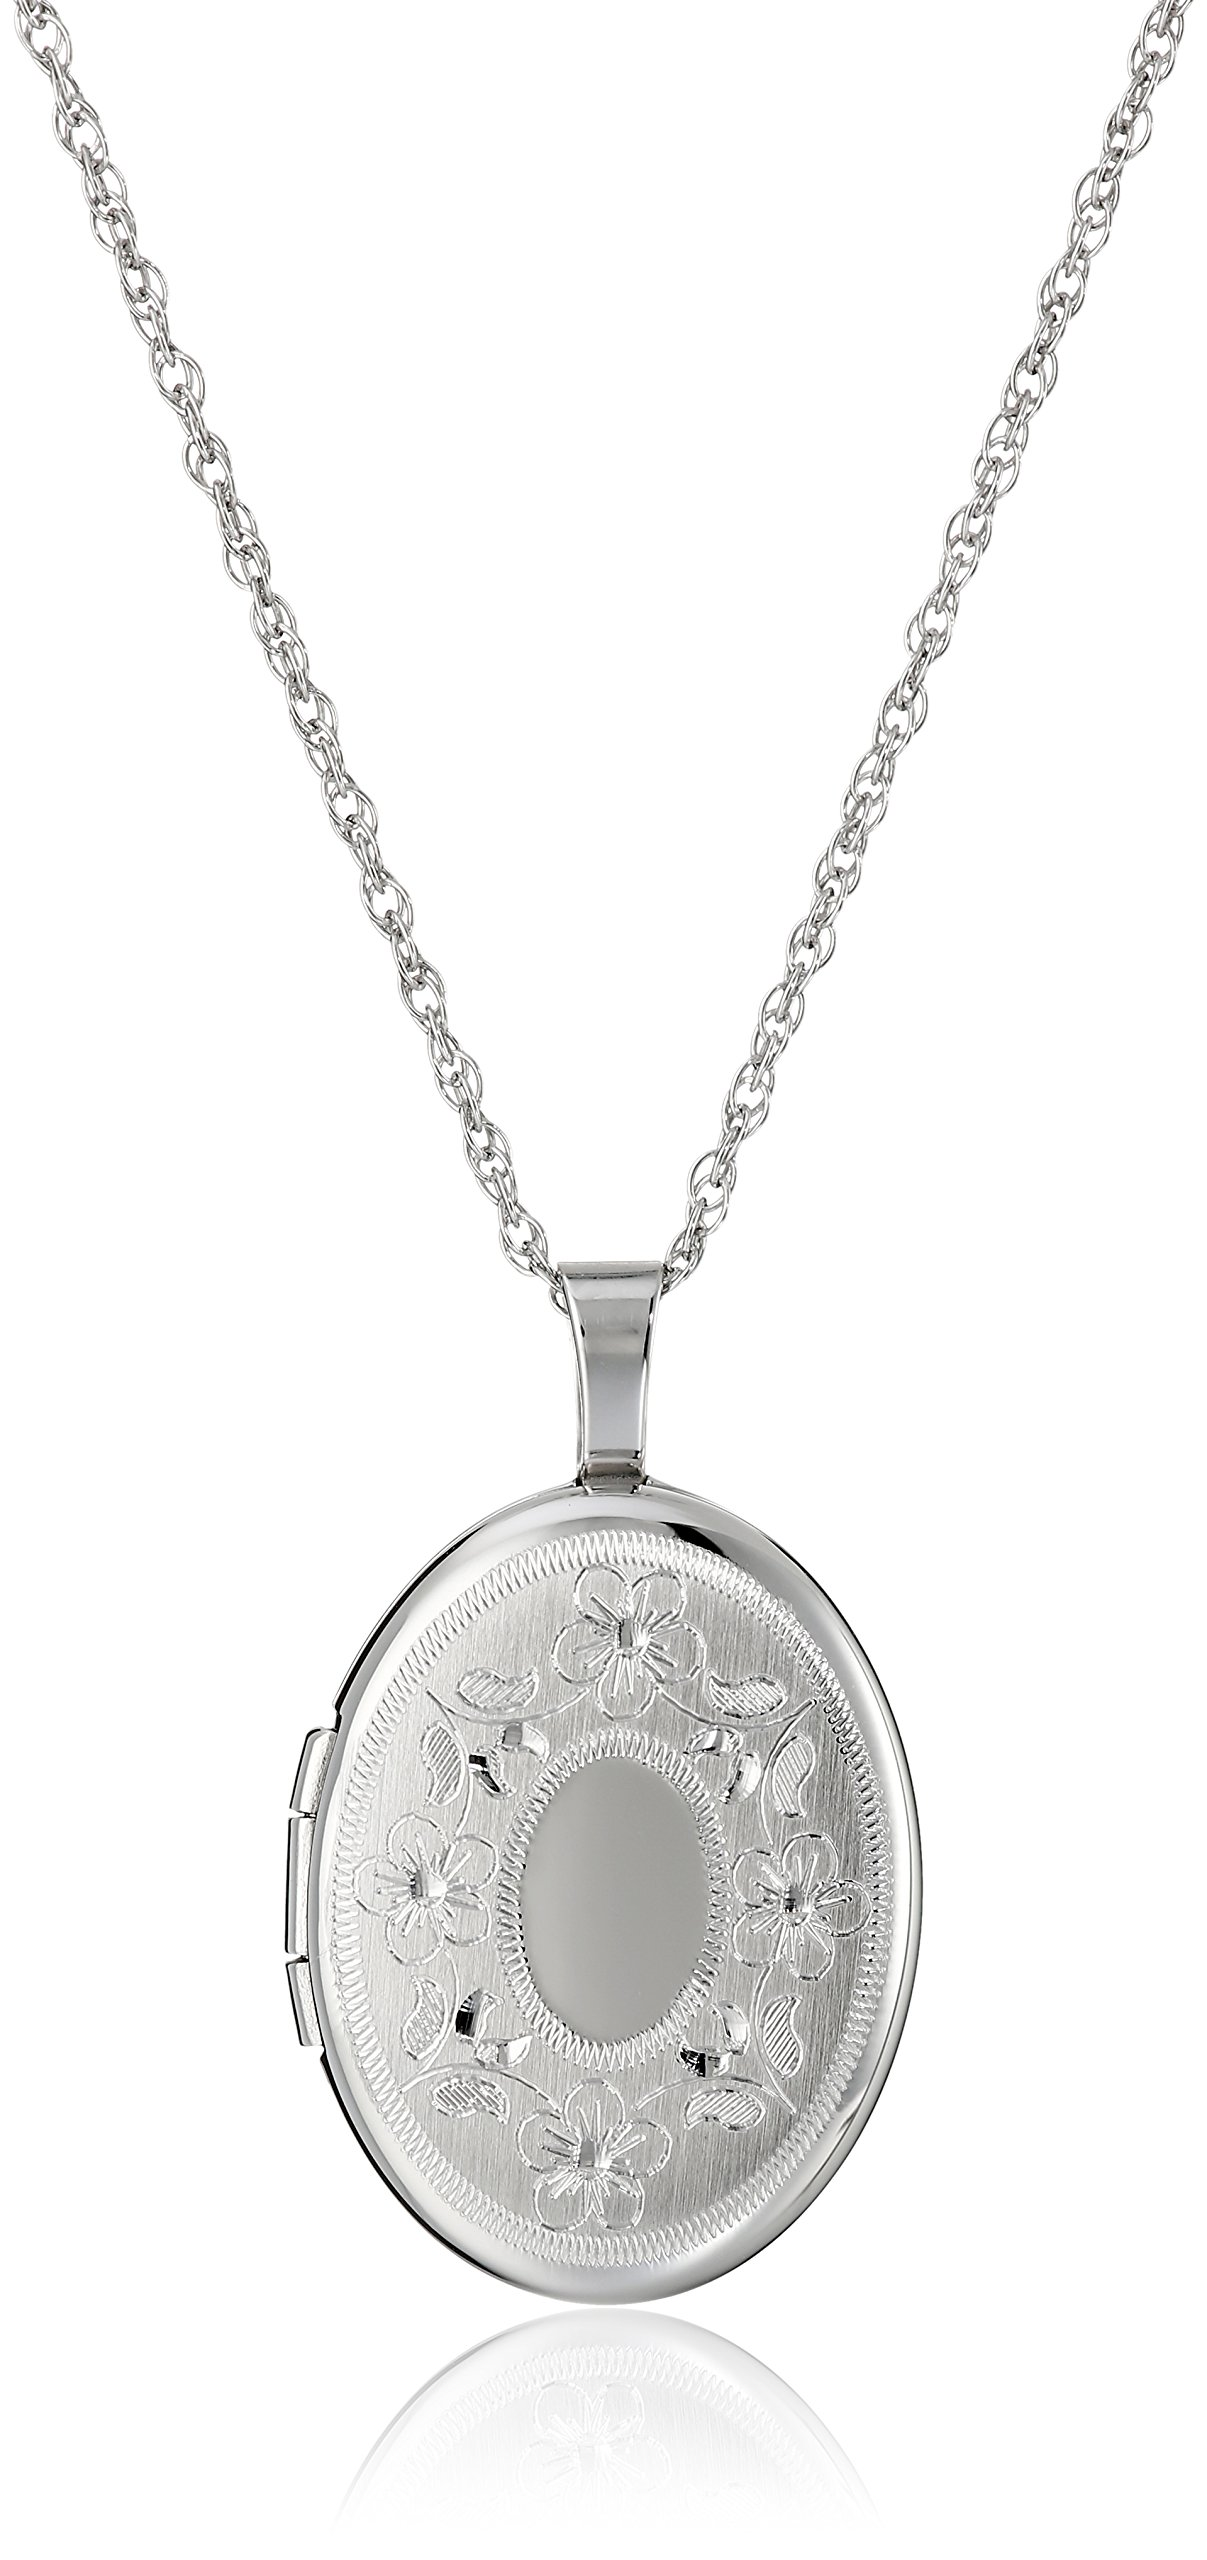 Sterling Silver Oval Hand-Engraved Locket Necklace, 18''